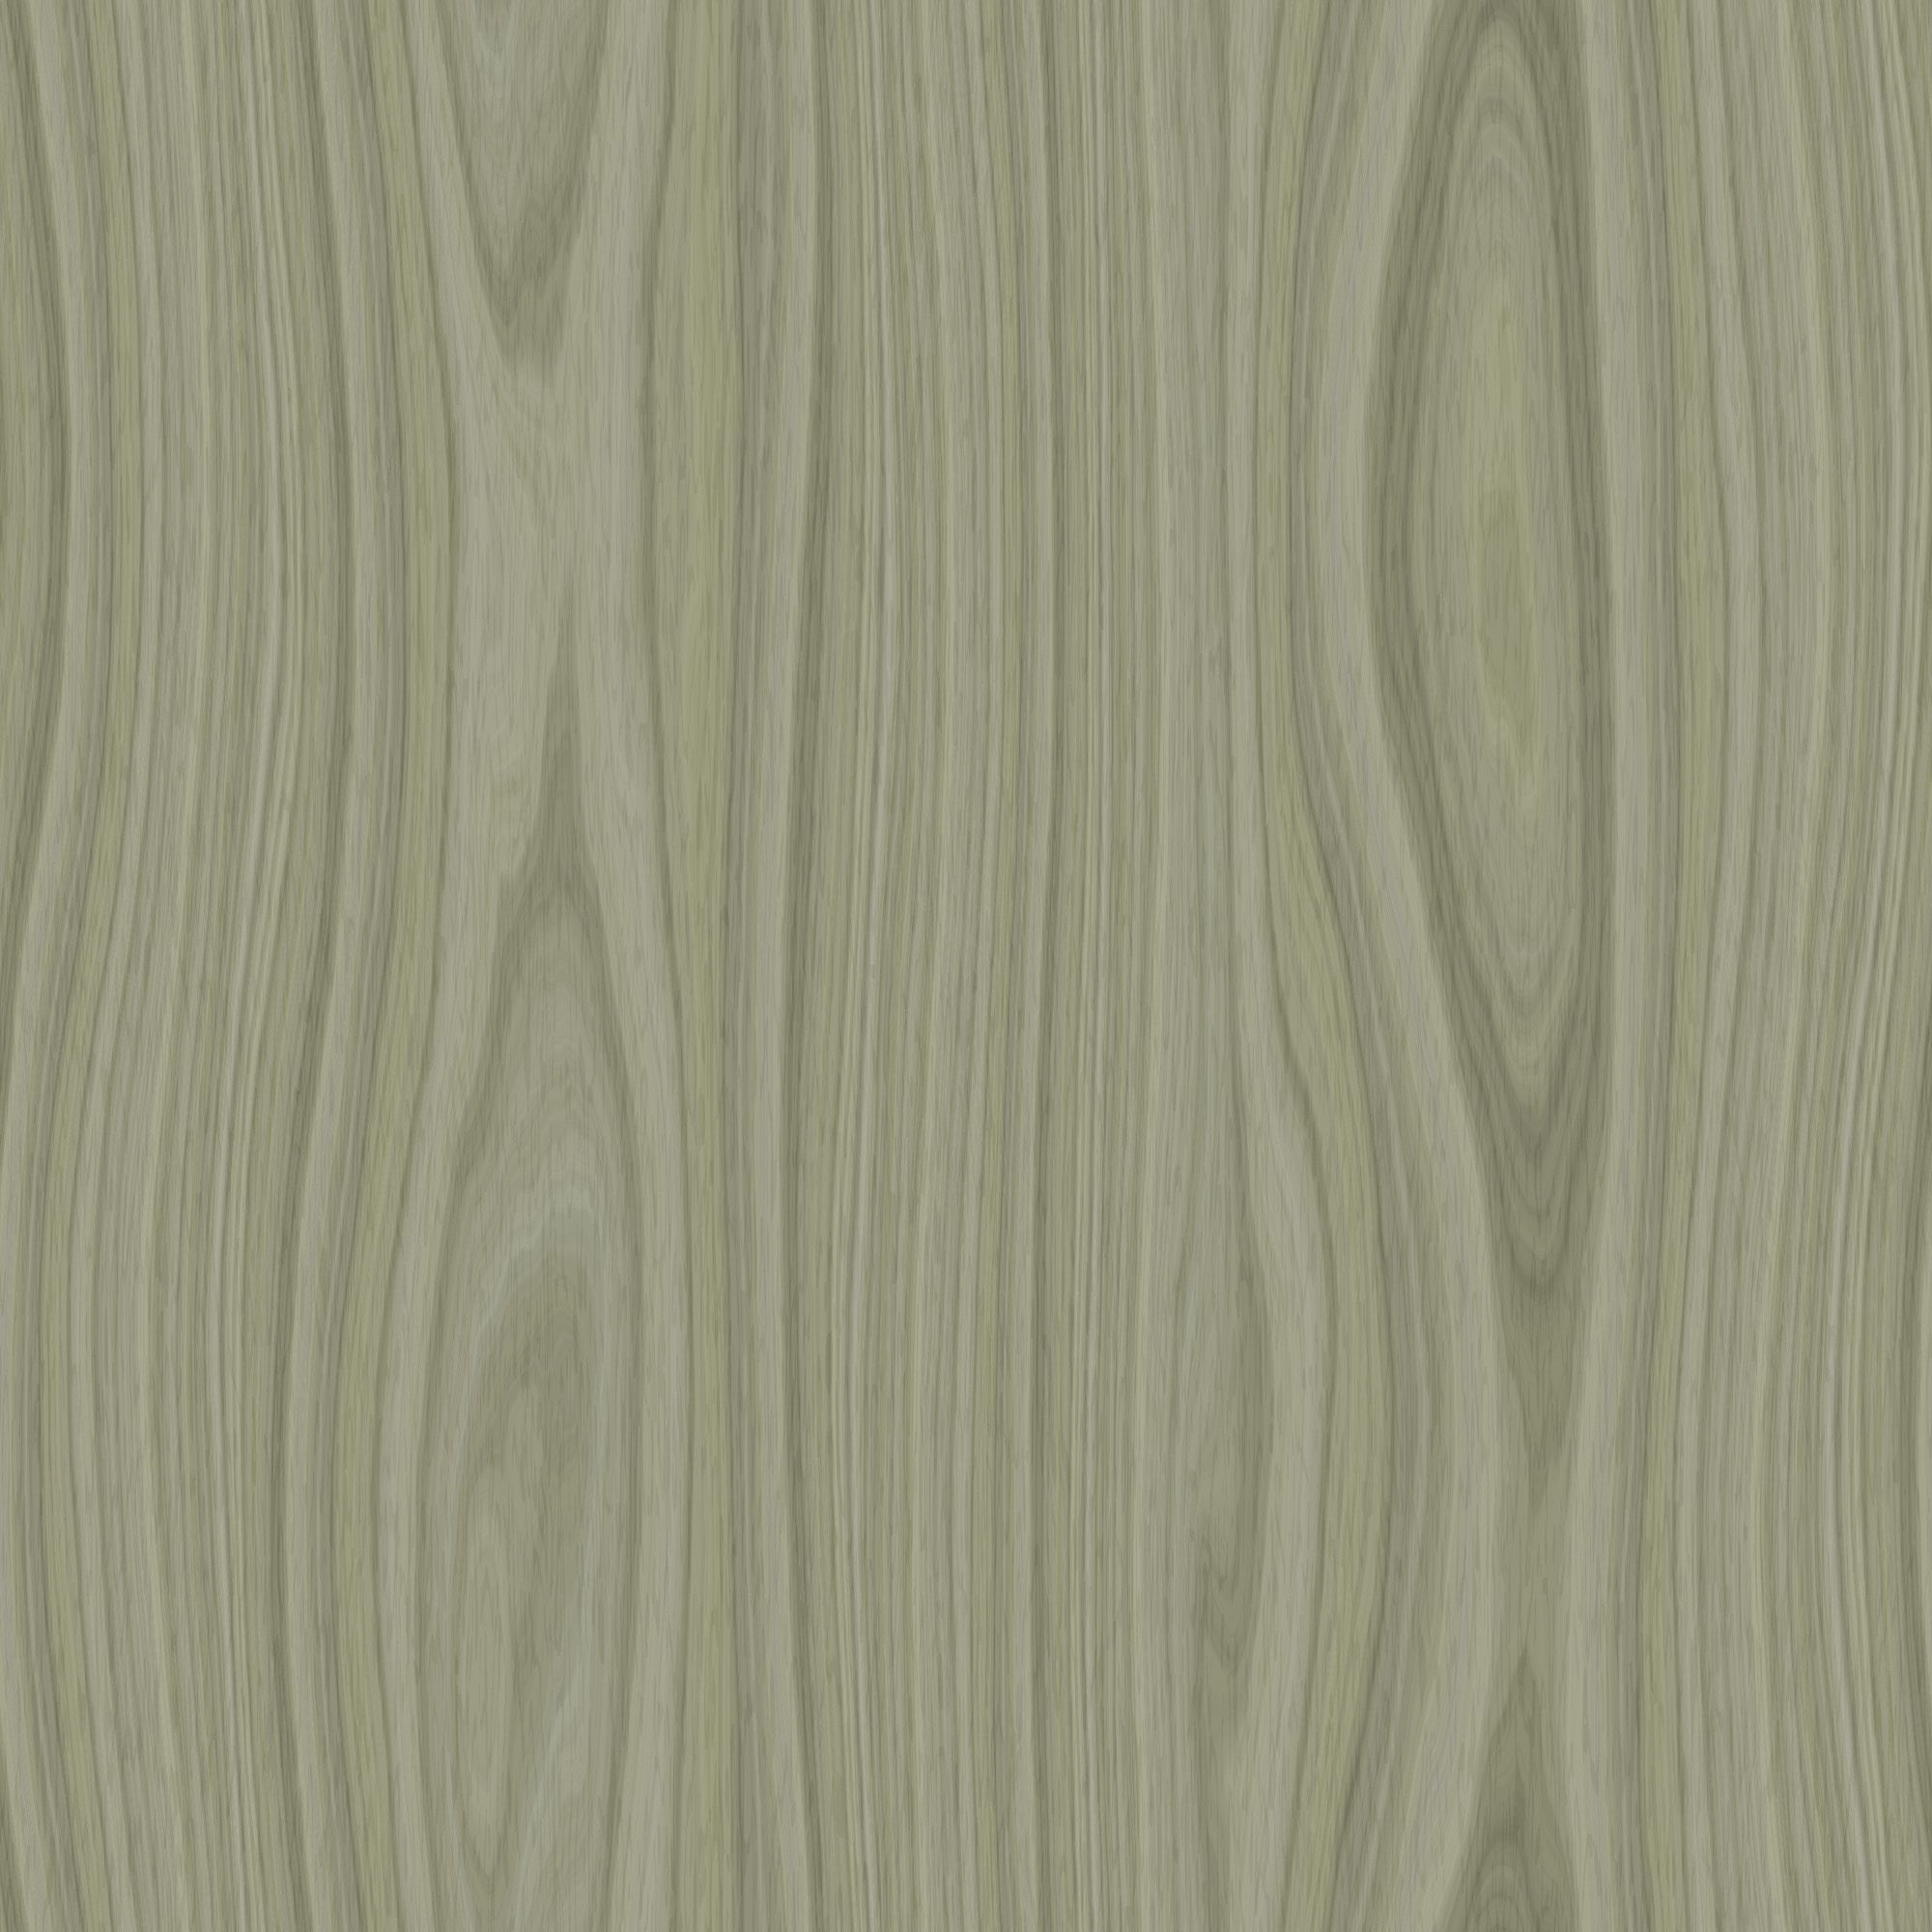 Free texture light wood wood new lugher texture - Green Background Seamless Wood 4 Another Wood Texture This Time It Is A Green Grey Seamless Wooden Background Image